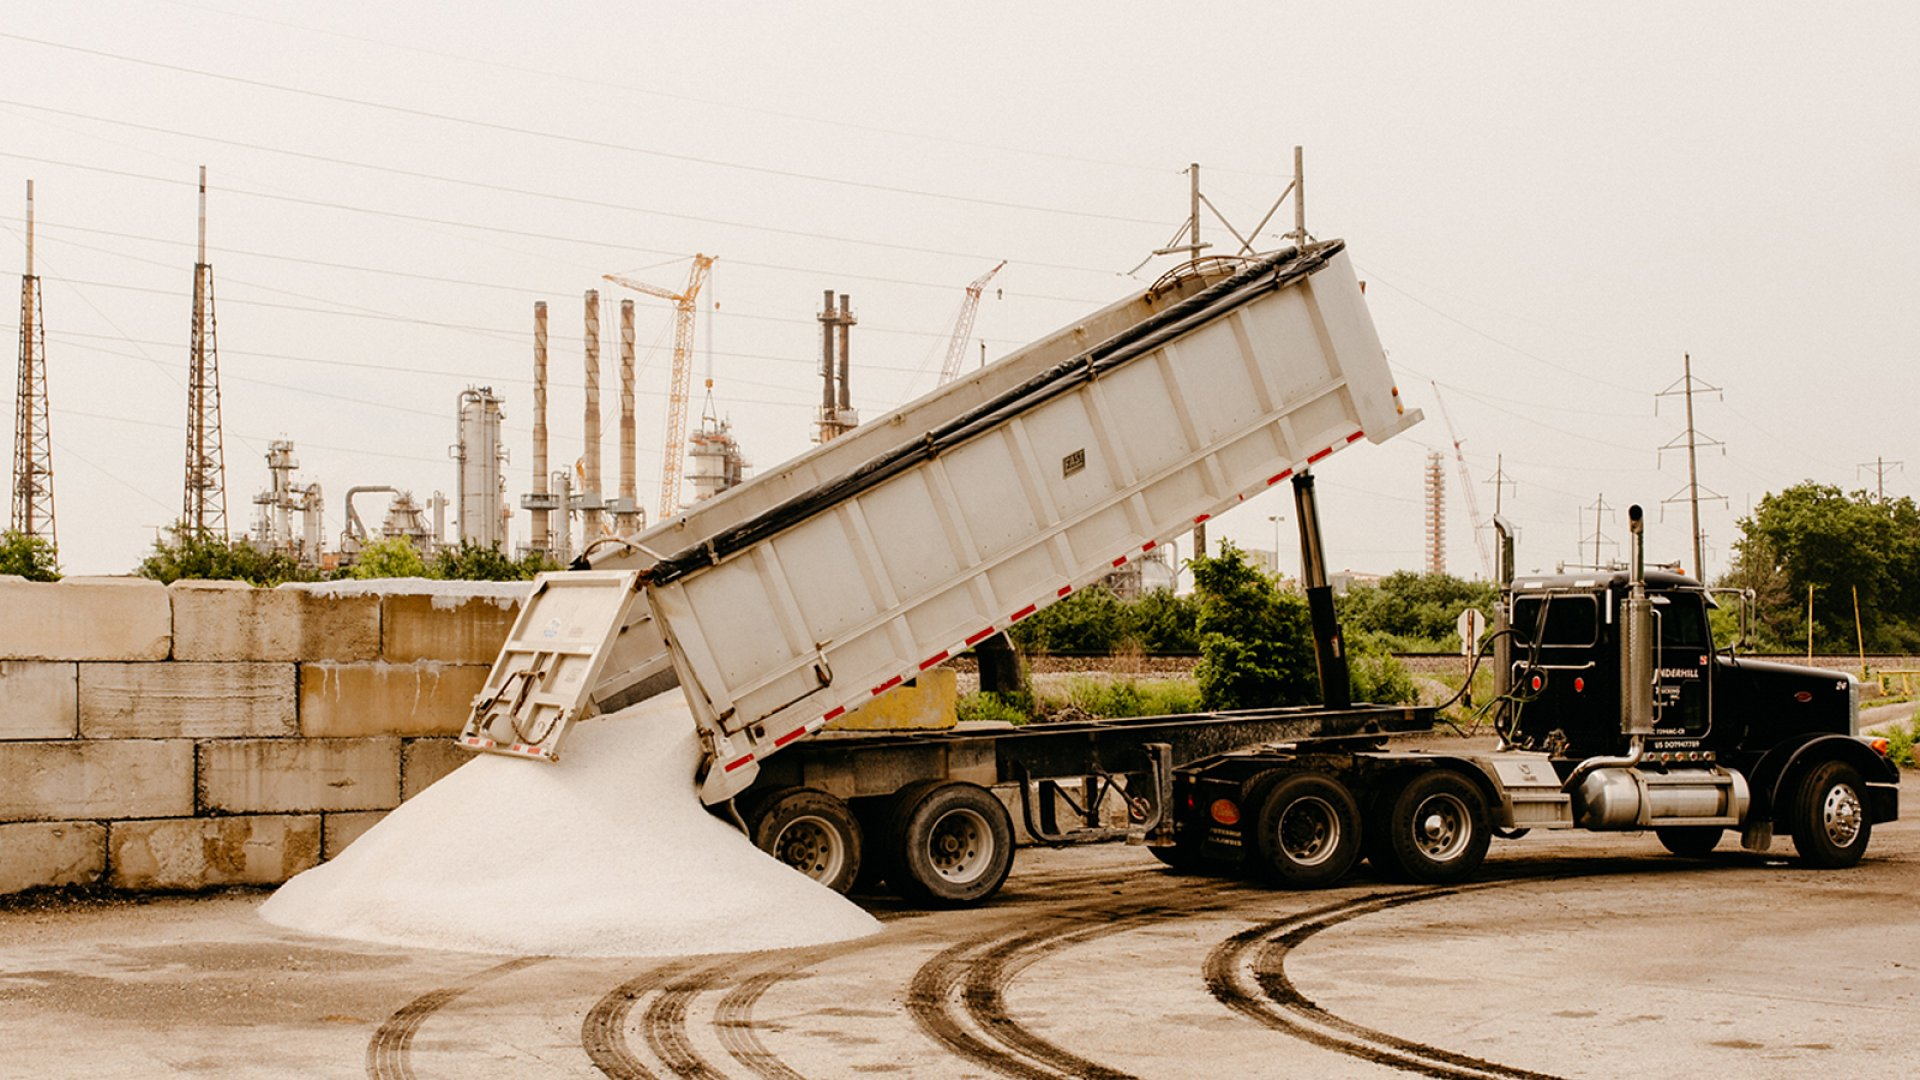 This Salt Company Helped Save Chicago From Disaster